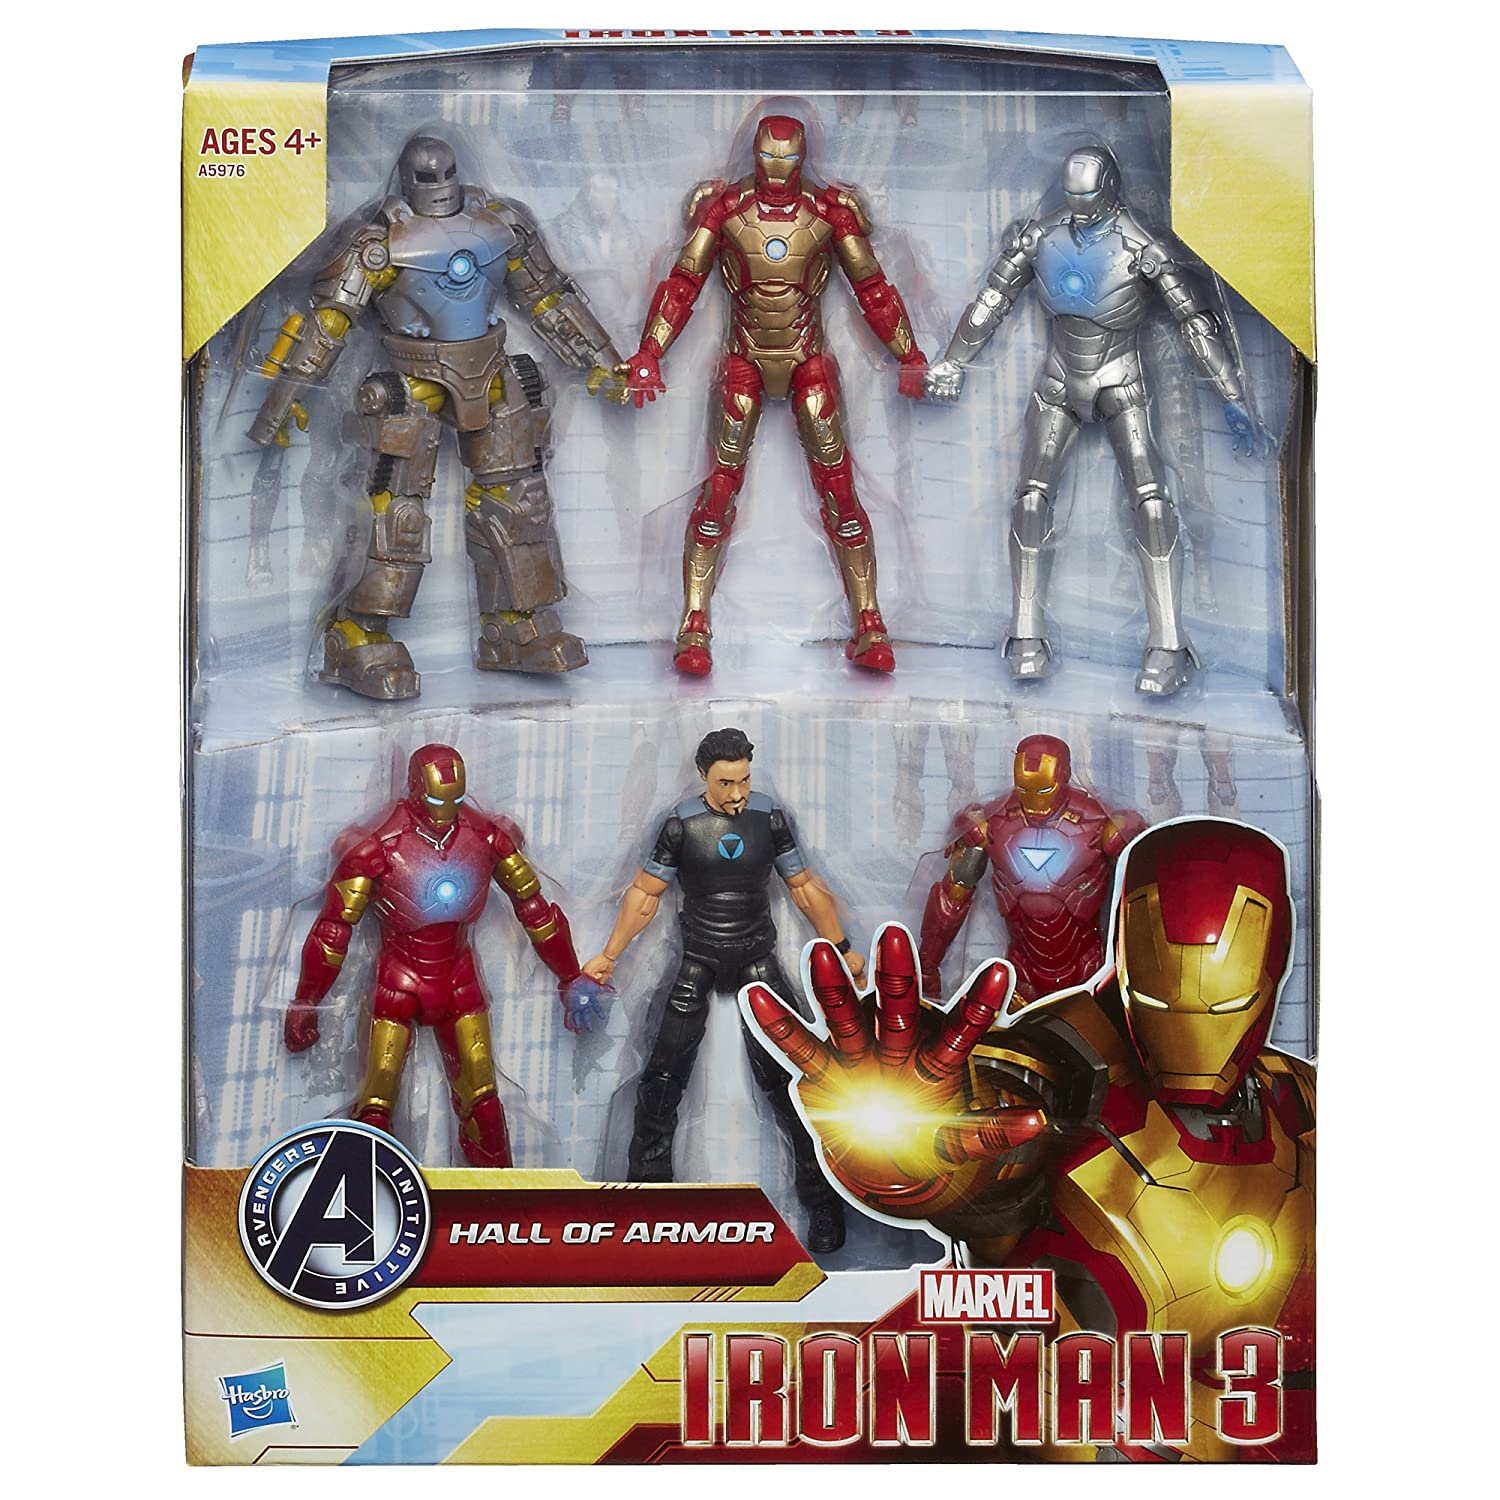 Target Toy Walmart : Iron man hall of armor set online at target and walmart